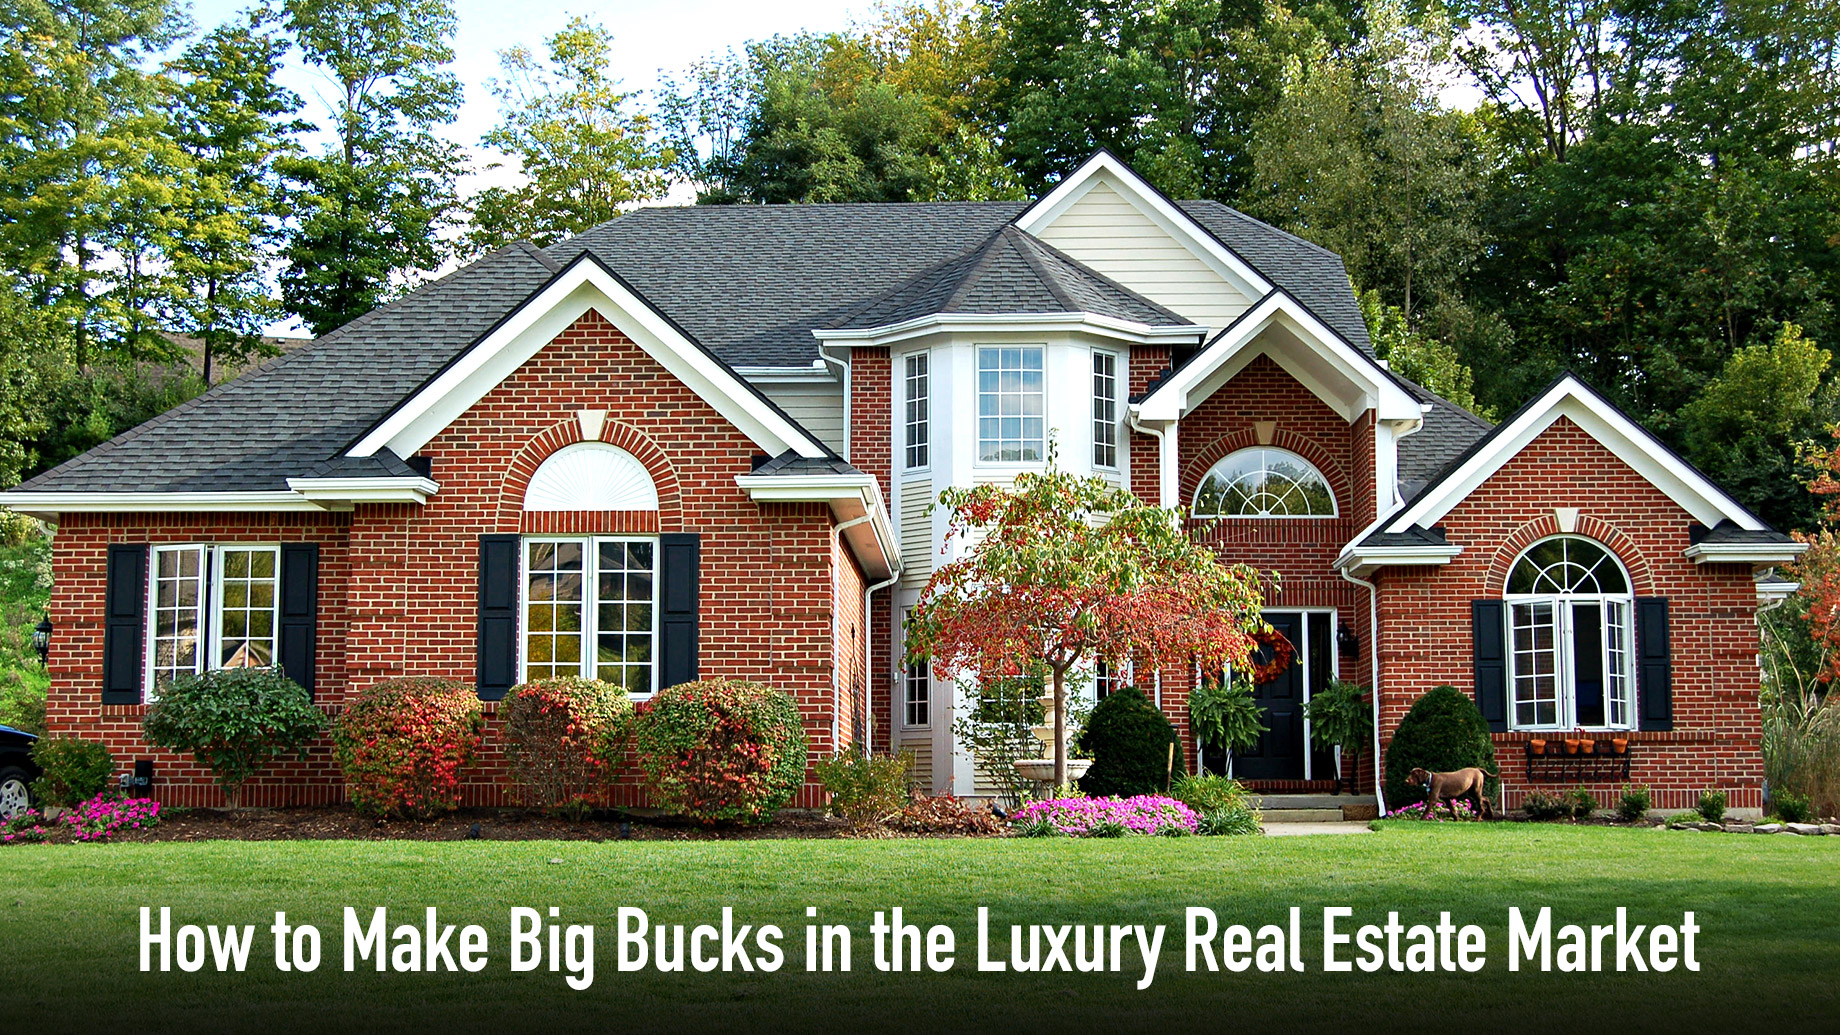 How to Make Big Bucks in the Luxury Real Estate Market